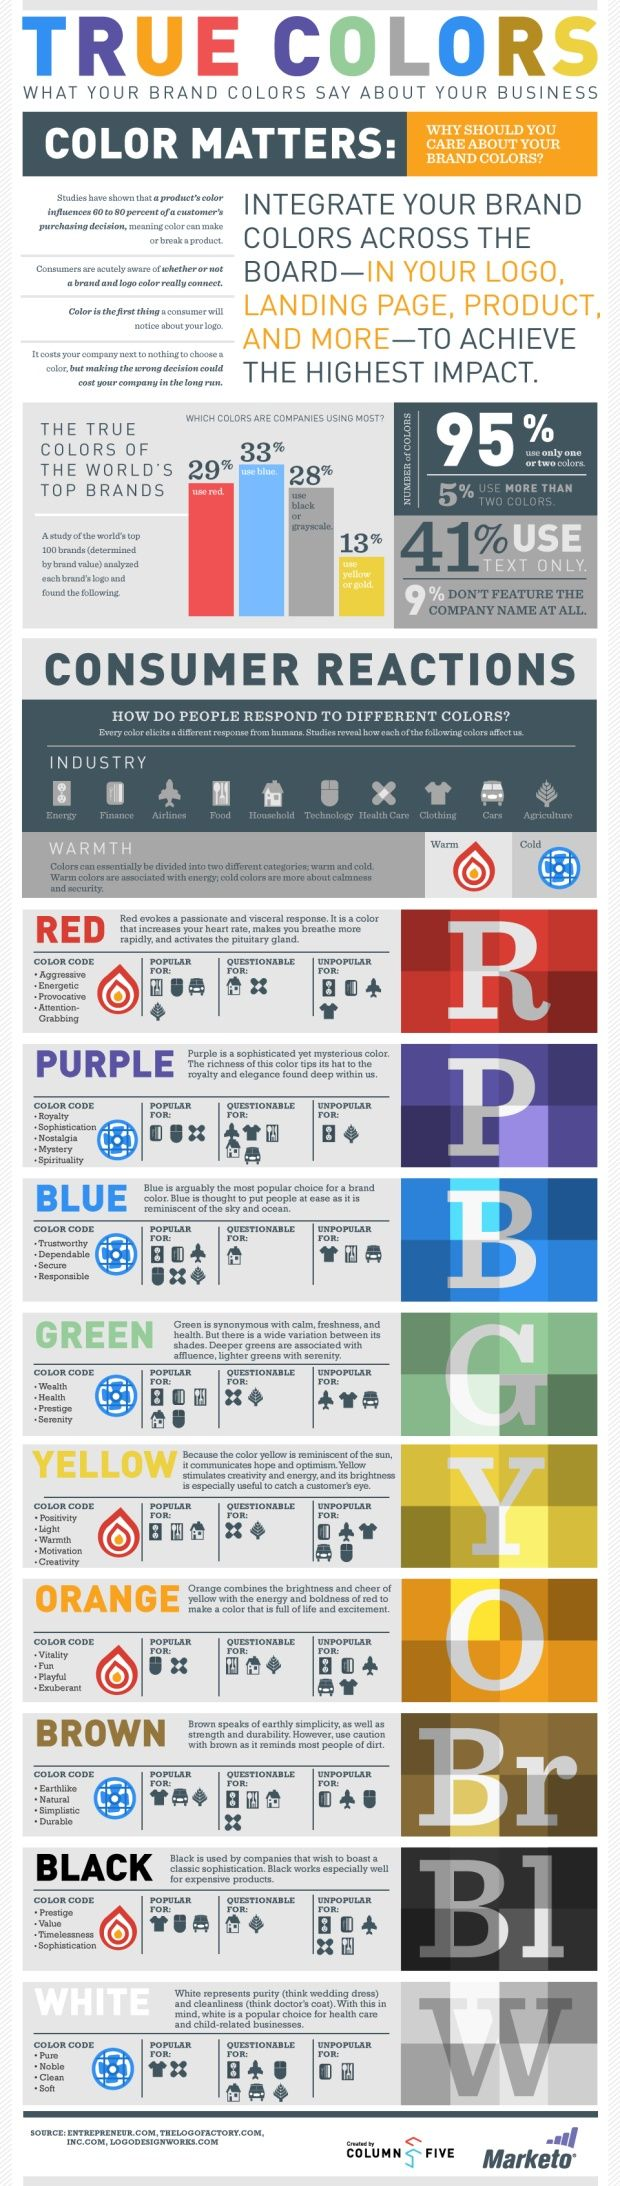 Colors and their meanings